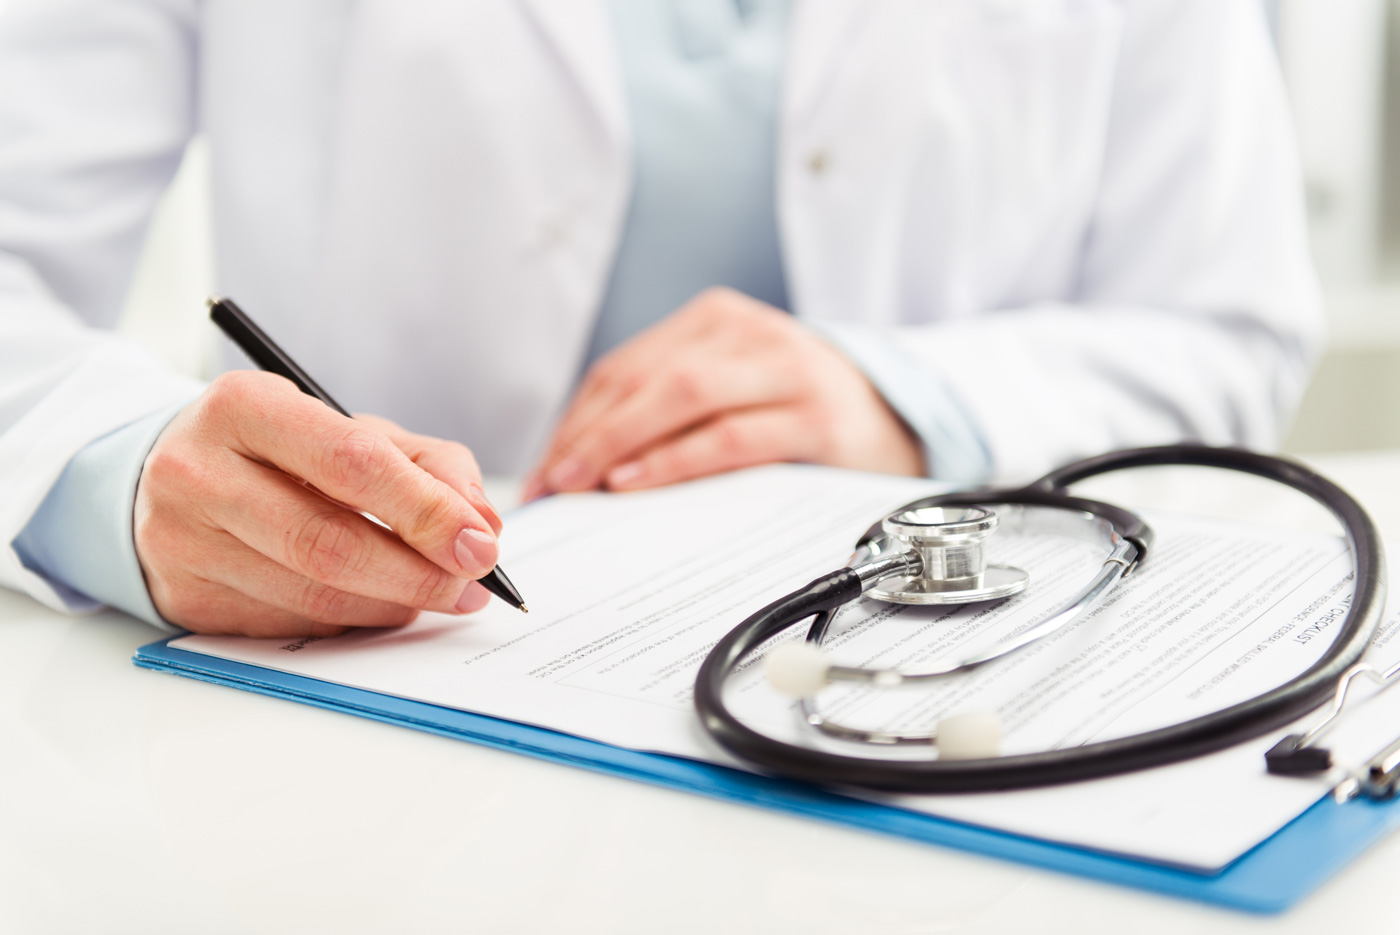 Would You Like To Know More About Expat Health Coverage?